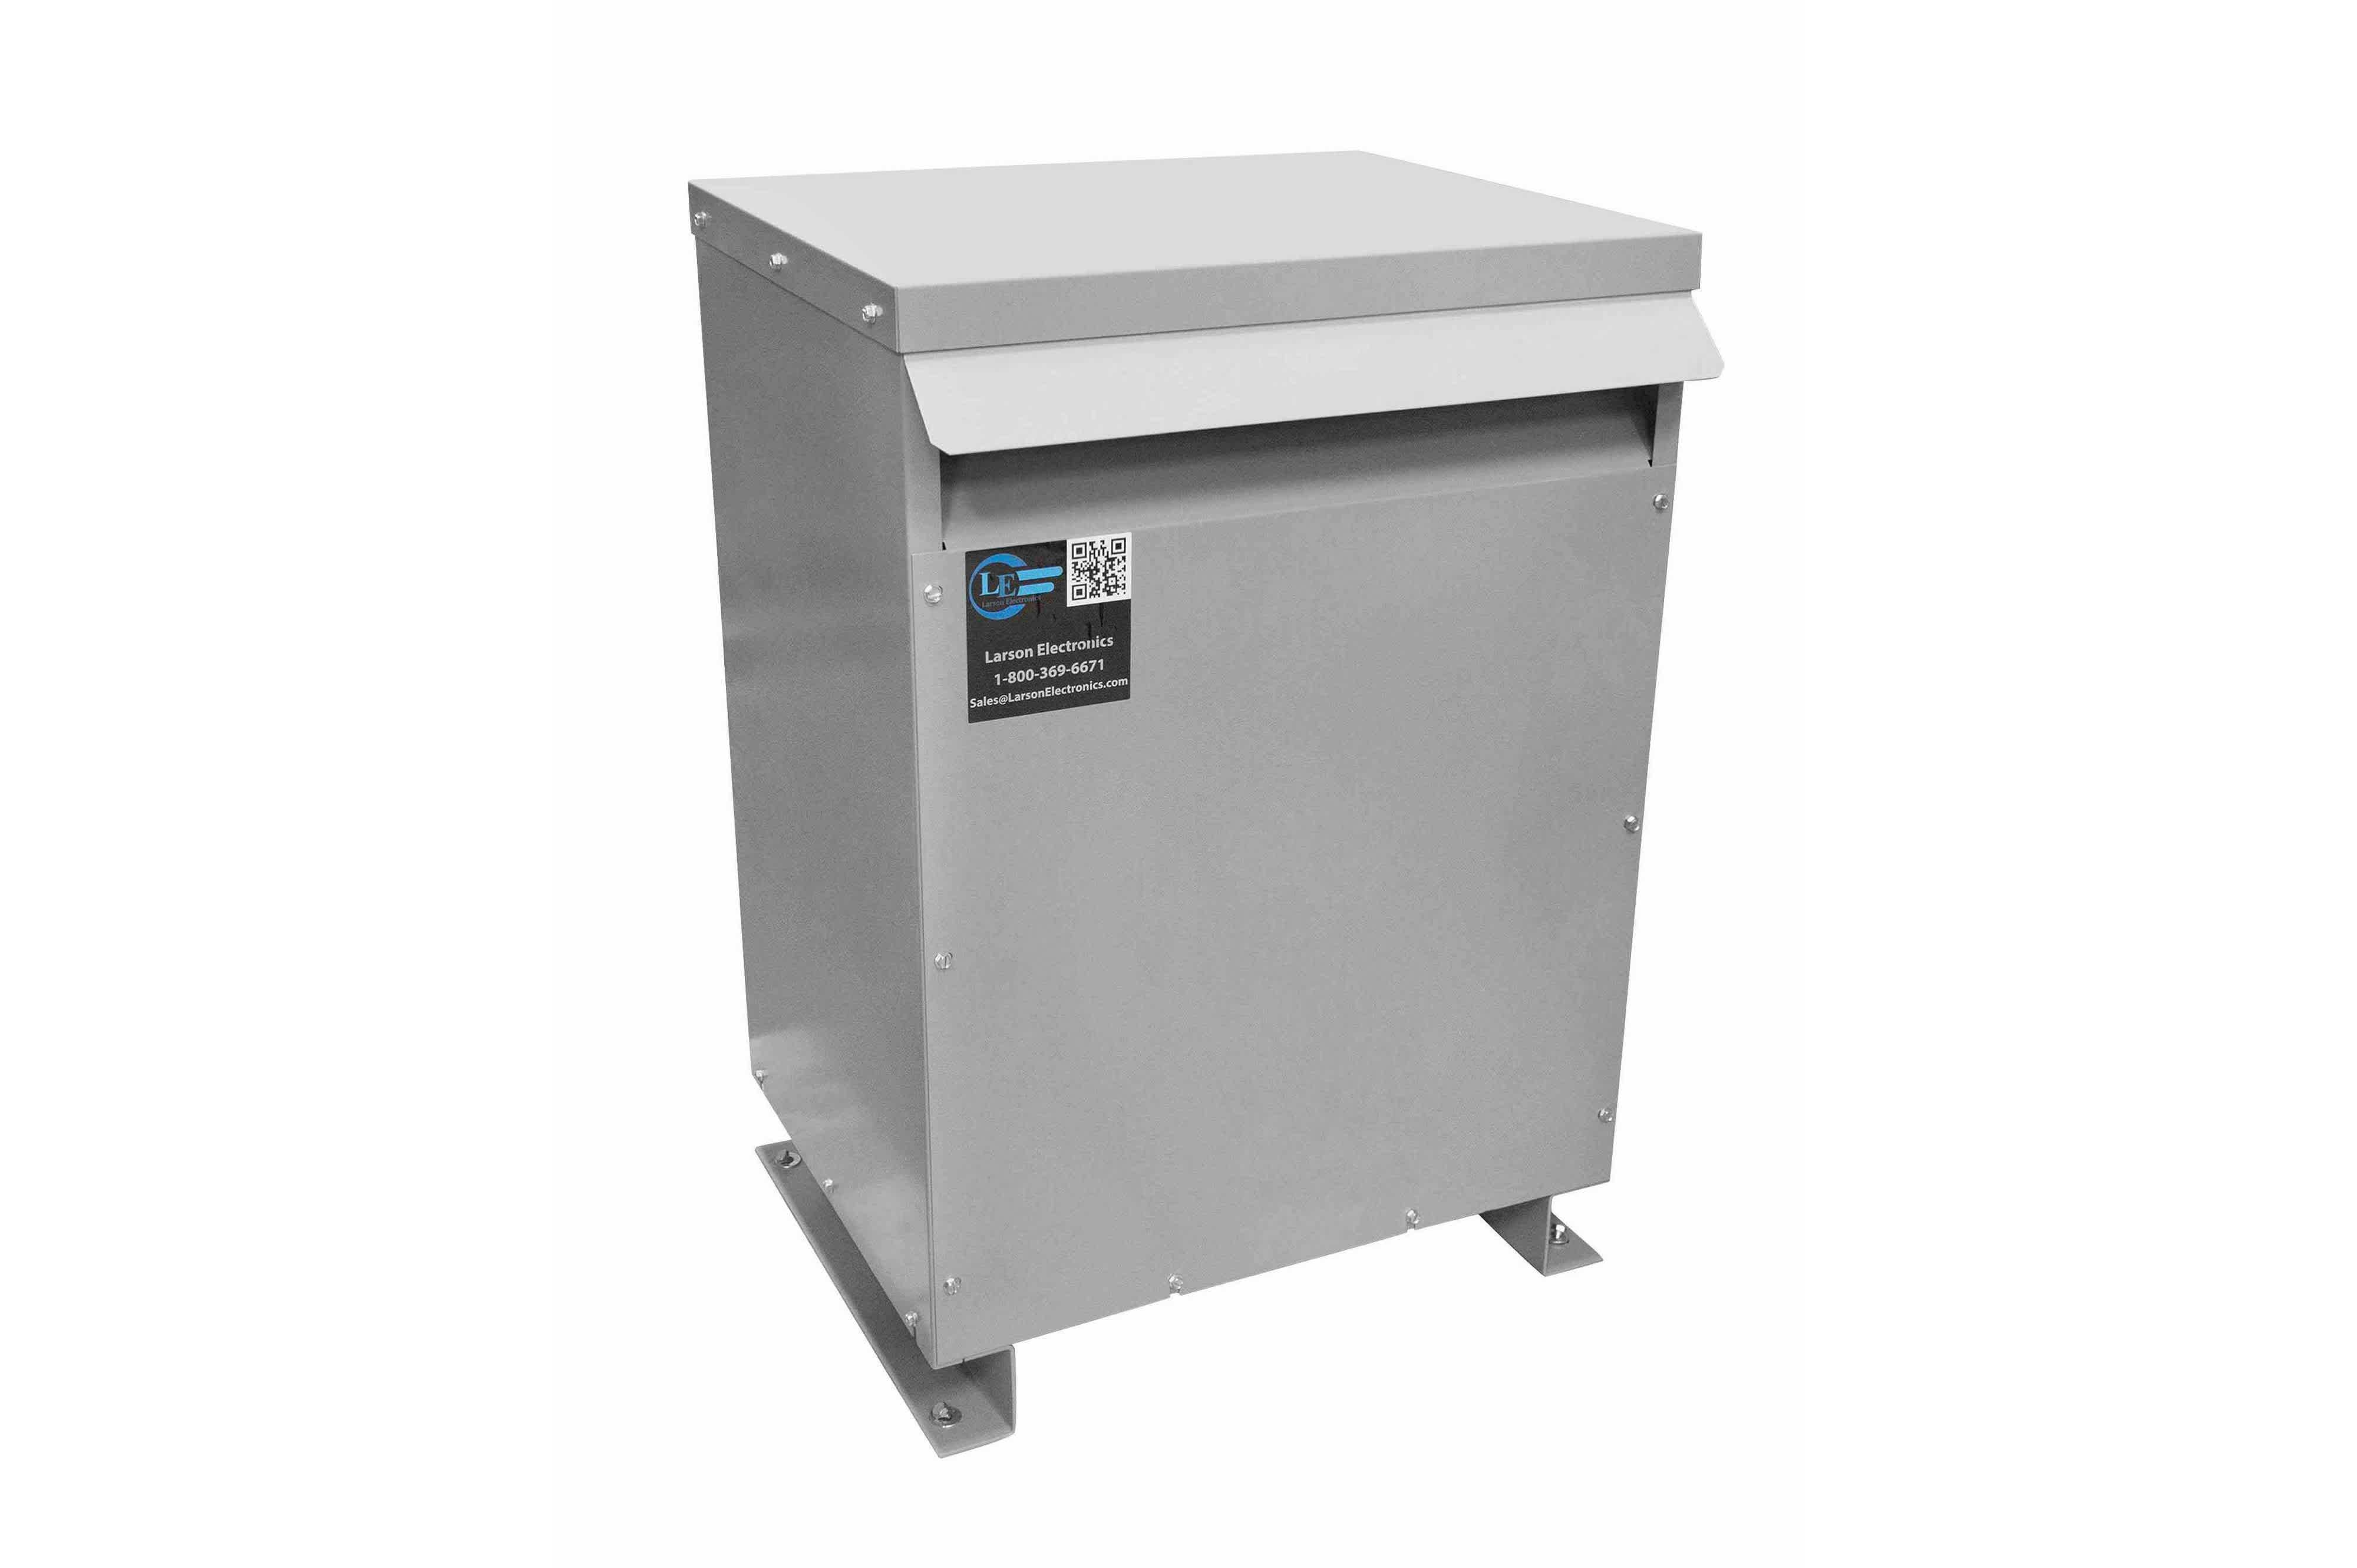 50 kVA 3PH DOE Transformer, 415V Delta Primary, 240V/120 Delta Secondary, N3R, Ventilated, 60 Hz